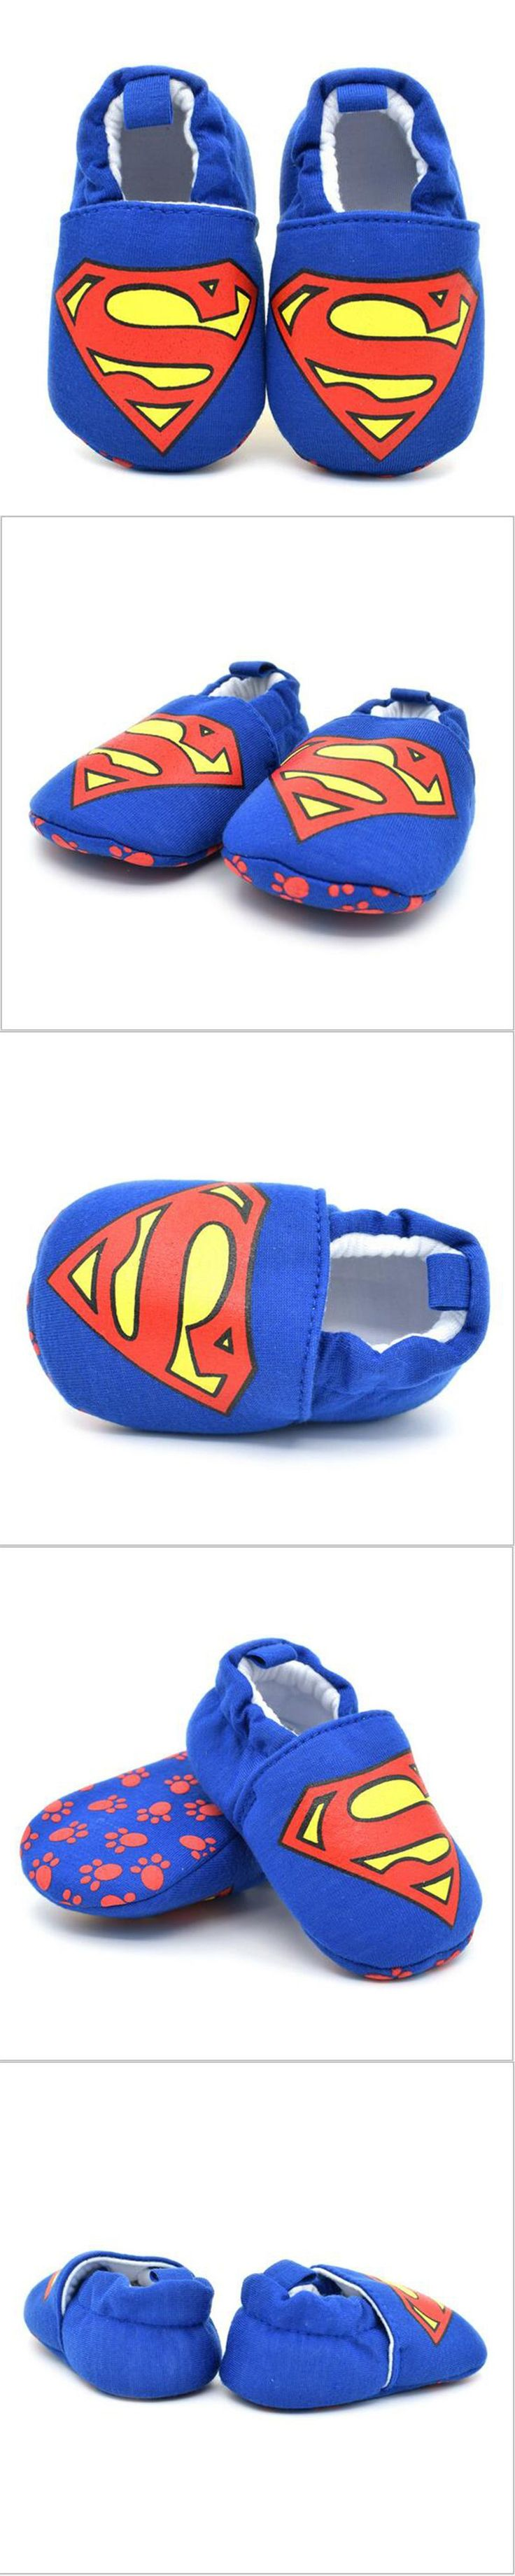 Baby shoes for boys girls hot blue Superman baby cotton toddler shoes bebe baby kids children first walker casual winter warmer $8.99